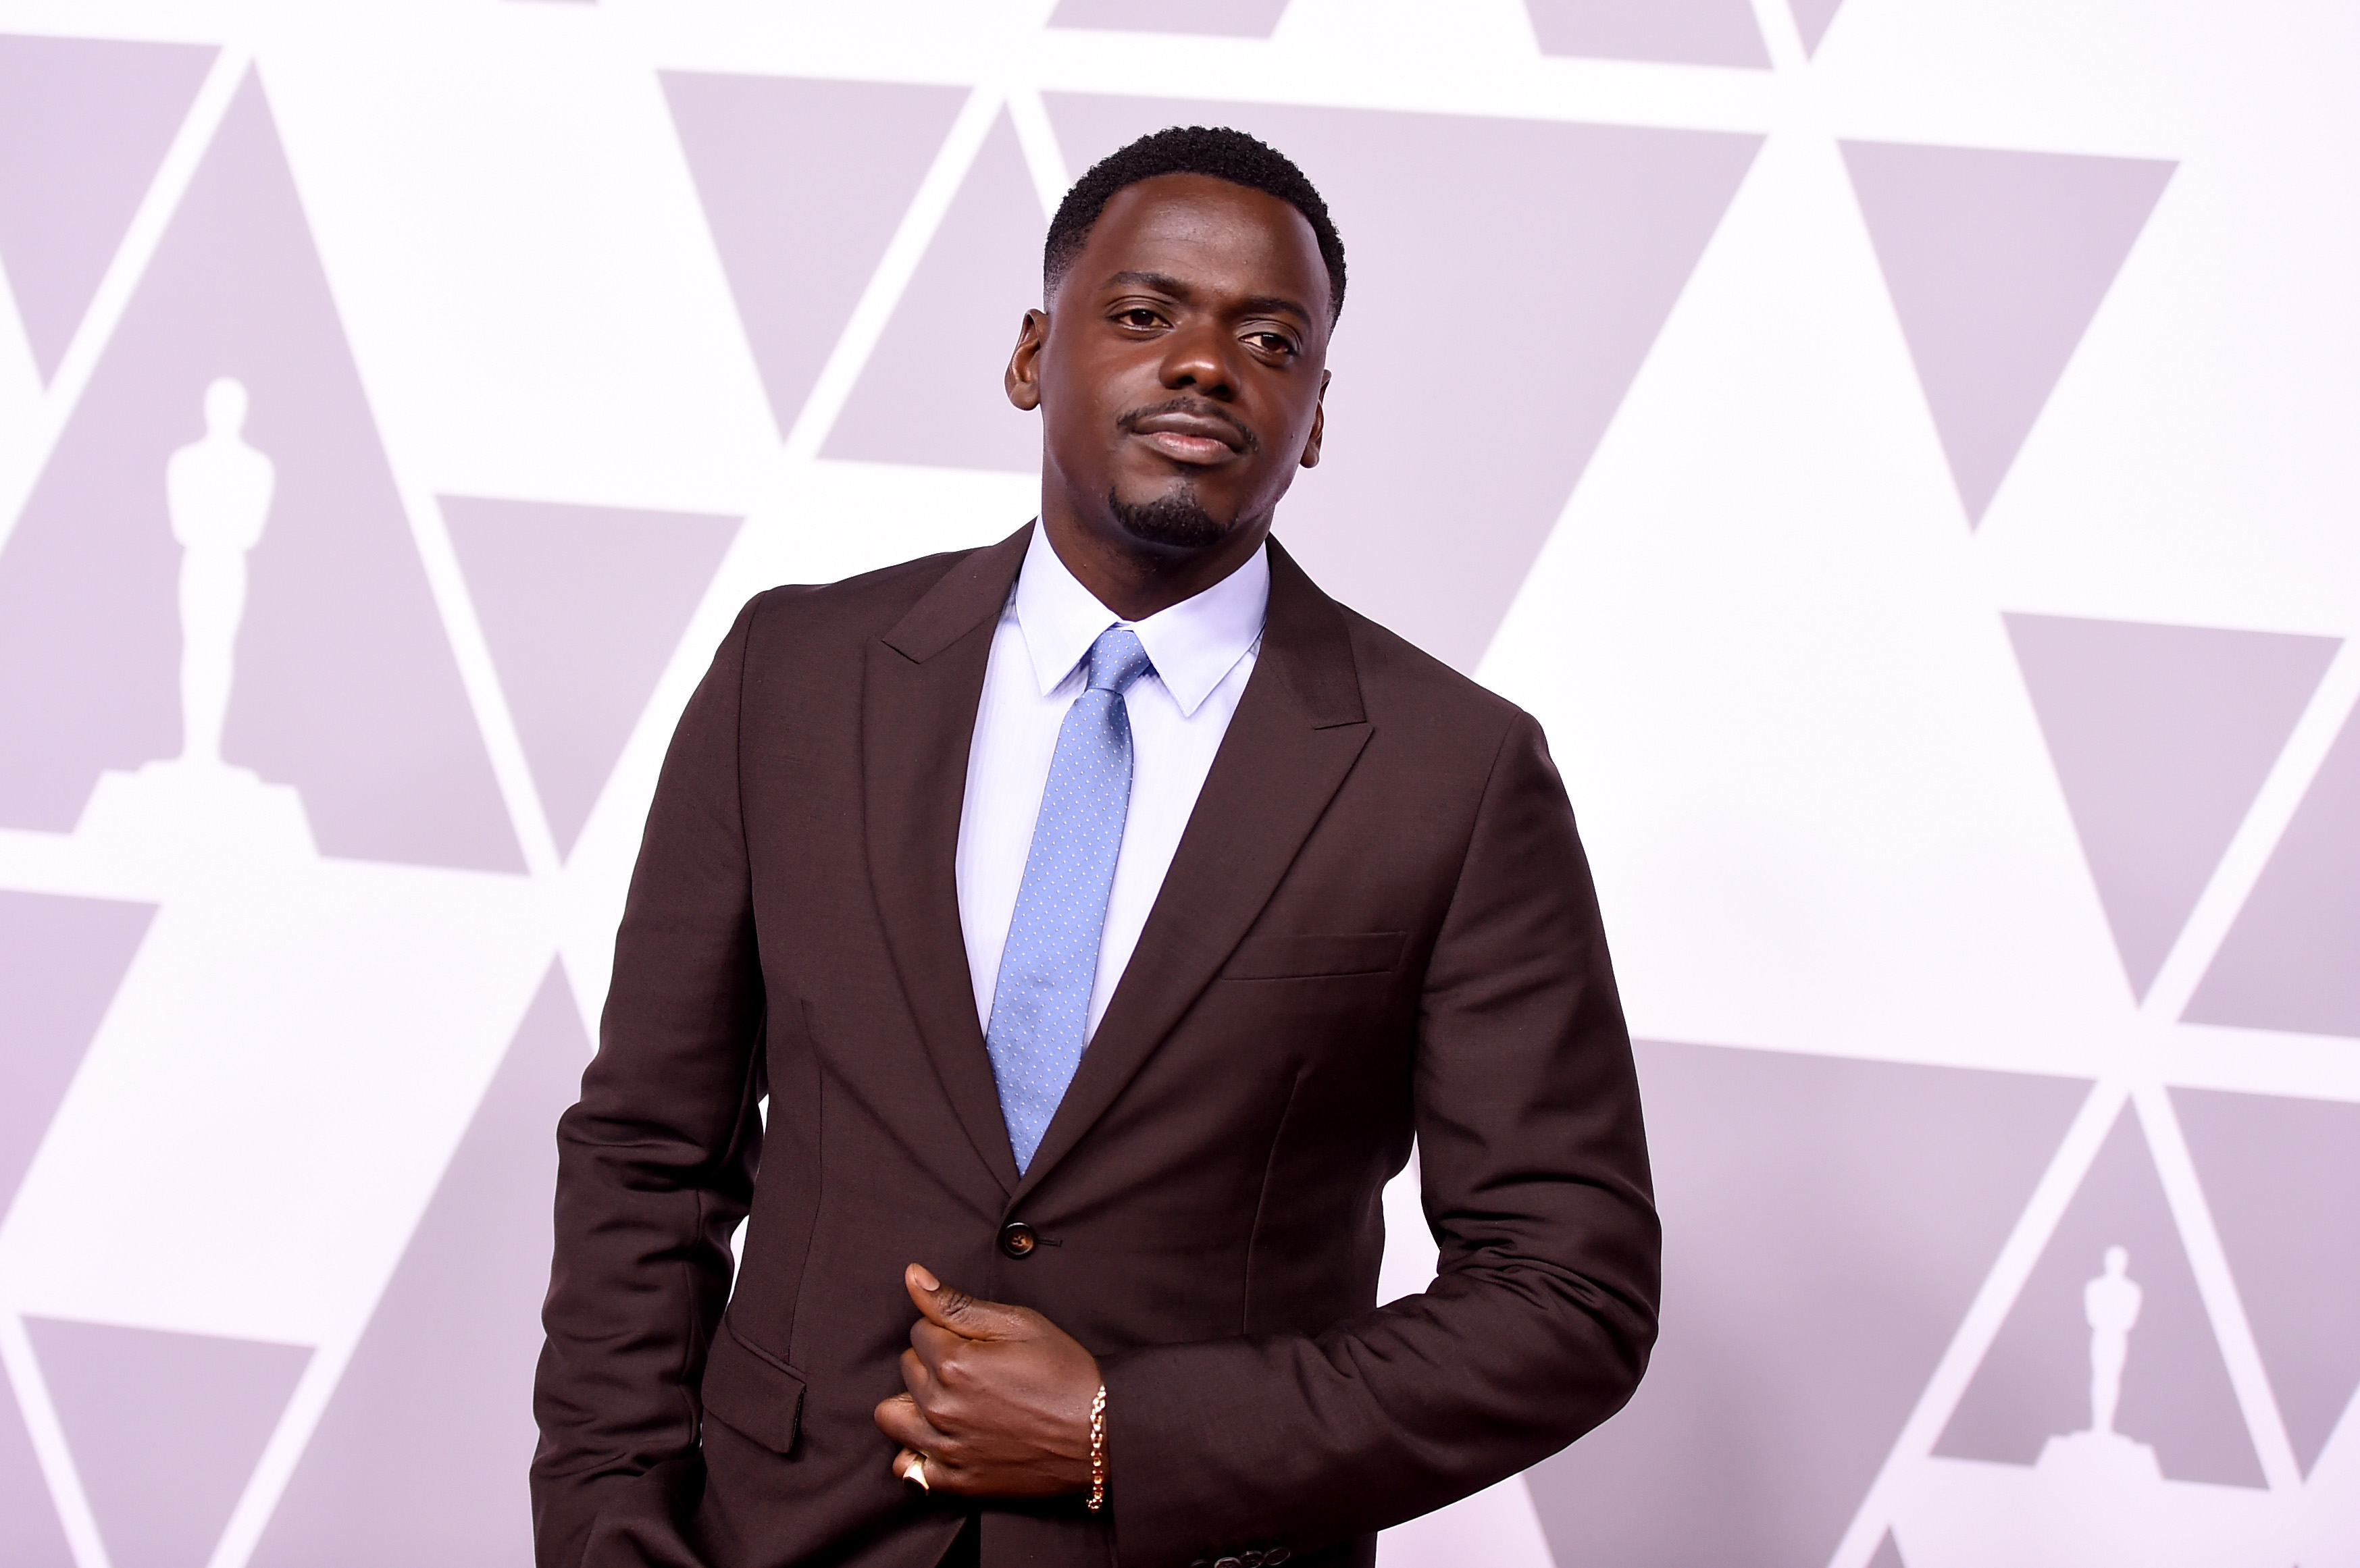 Daniel Kaluuya at the Oscars nominees